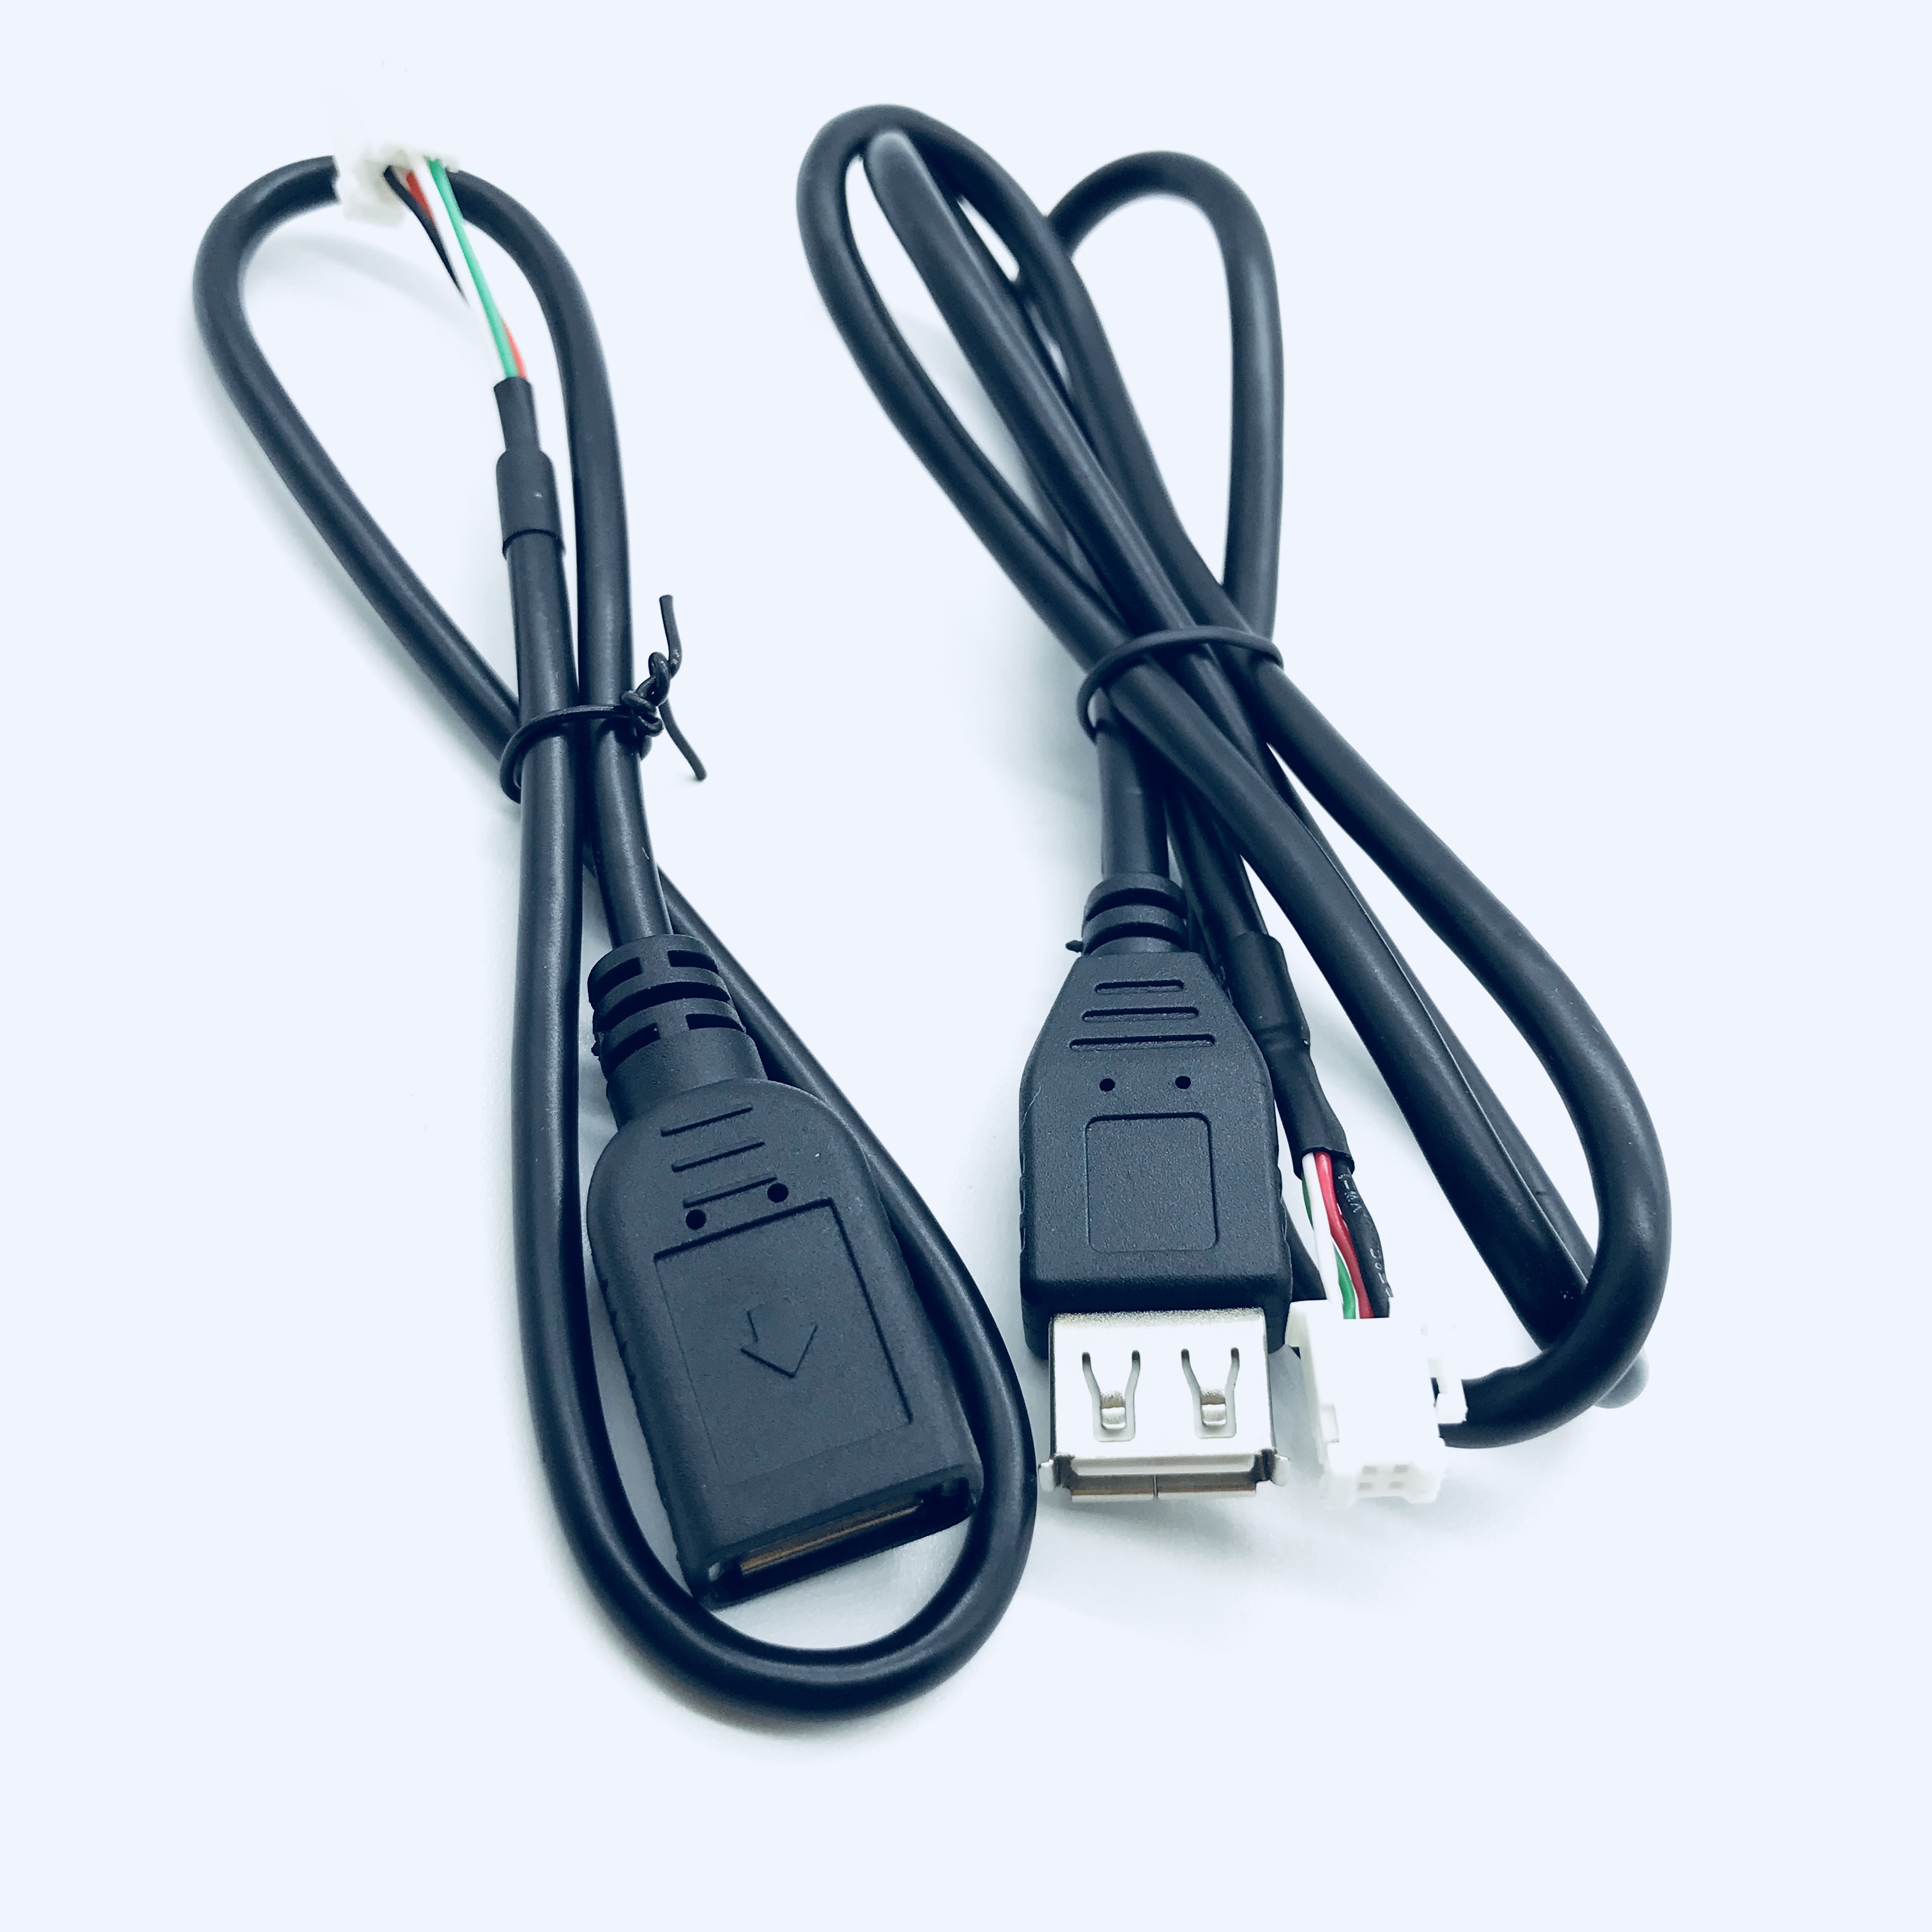 Supplier Micro Usb Plug To 2 Wires Open End Cable Buy Supplier Micro Usb Plug To 2 Wires Open End Cable 24awg Jst Connector Wire Harness 24awg Jst Connector Wire Harness Product On